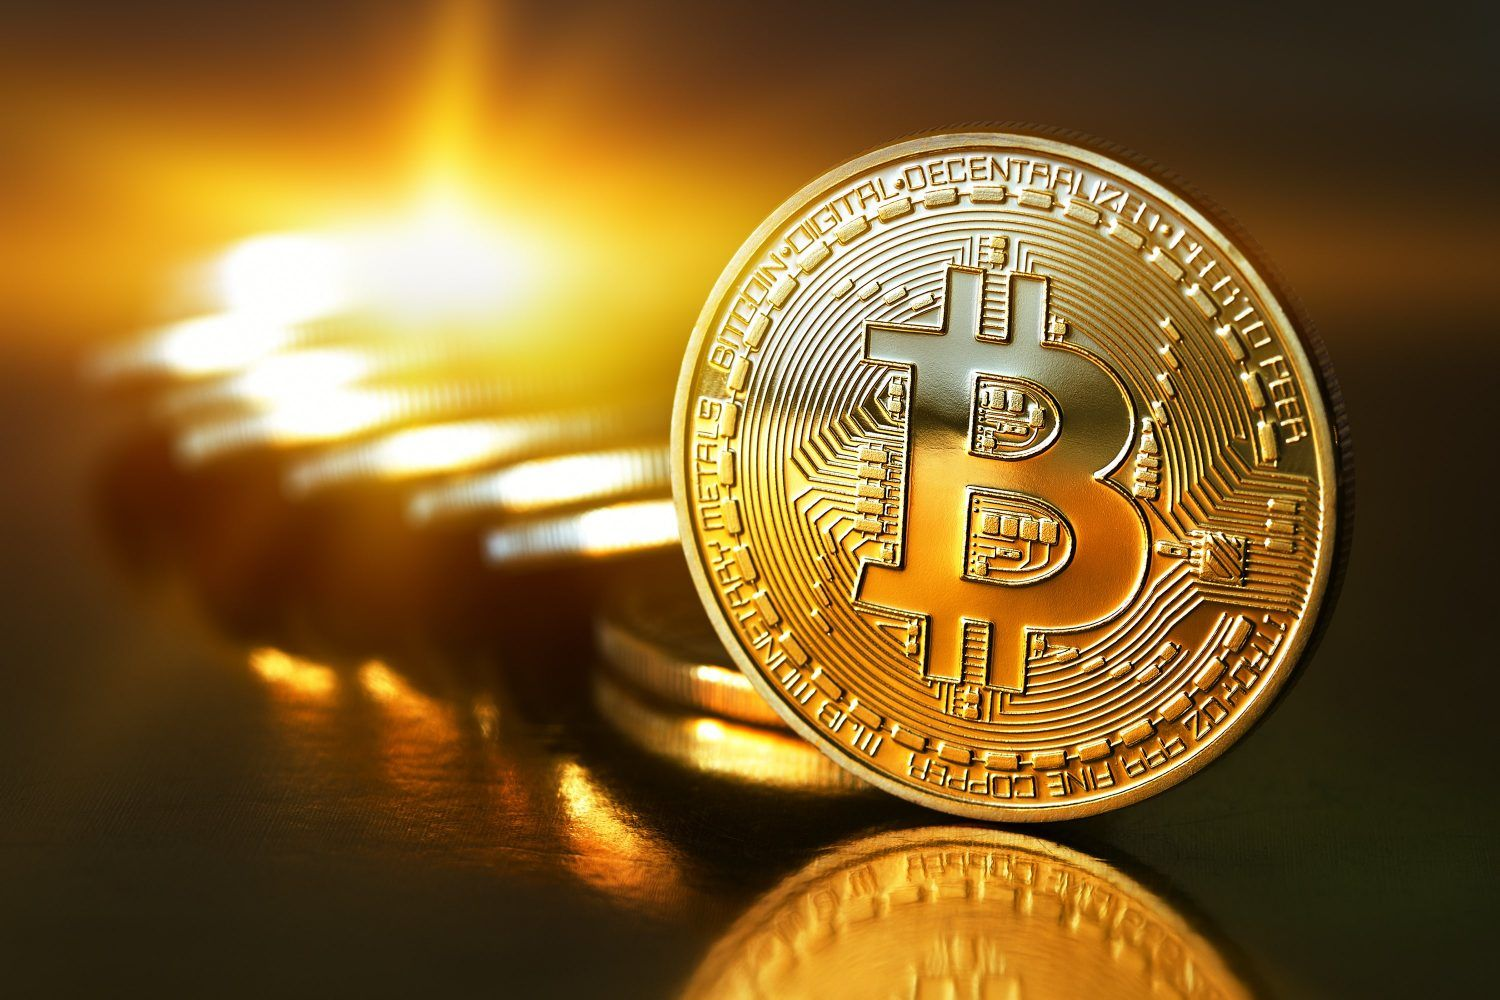 Bitcoin Surges 8% to Record Near $3,000